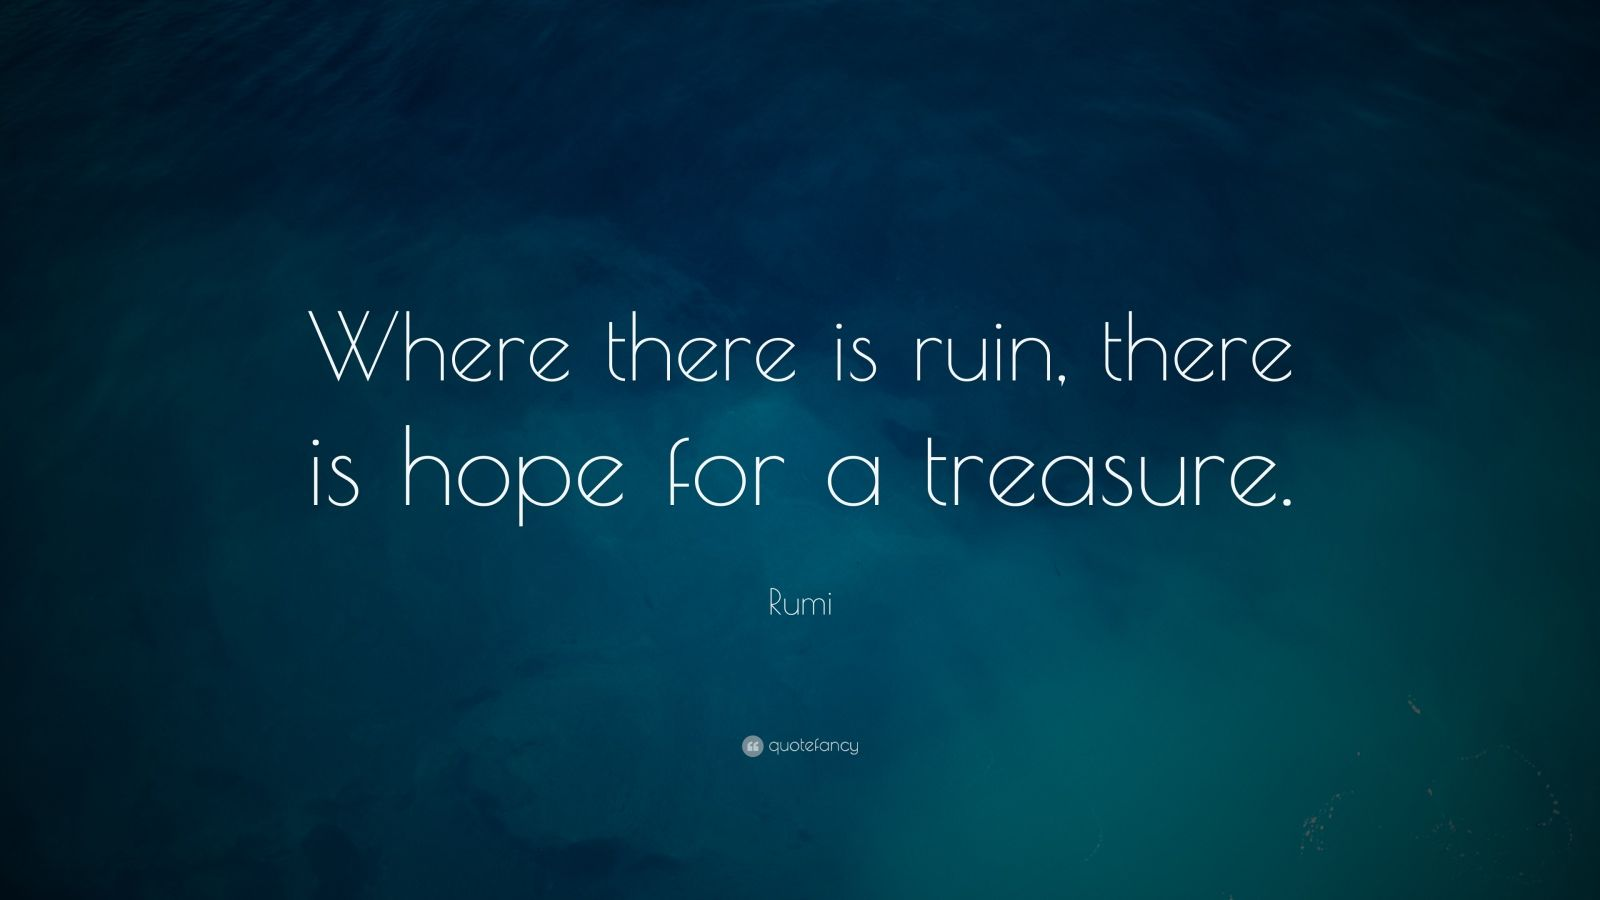 Rumi Quotes (14 Wallpapers)